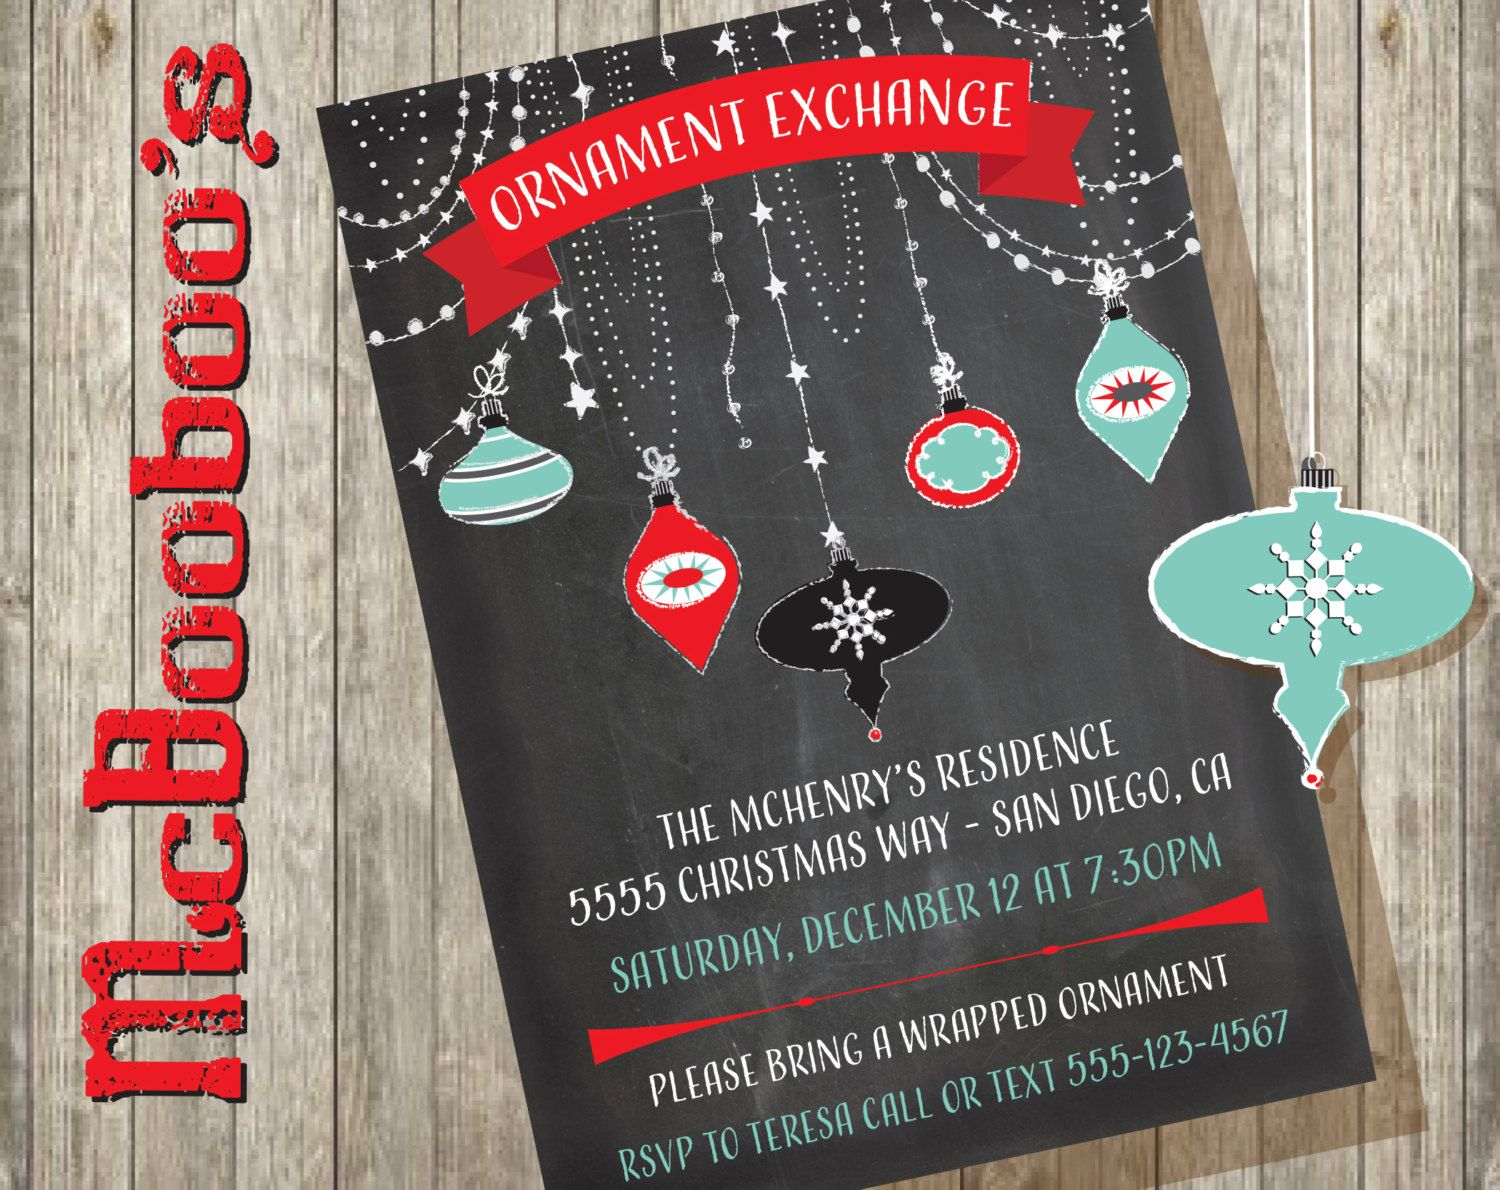 097d224e3c Pretty Chalkboard Ornament Exchange Invitation by McBooboos on Etsy. Christmas  InvitationsChalkboardChristmas ...